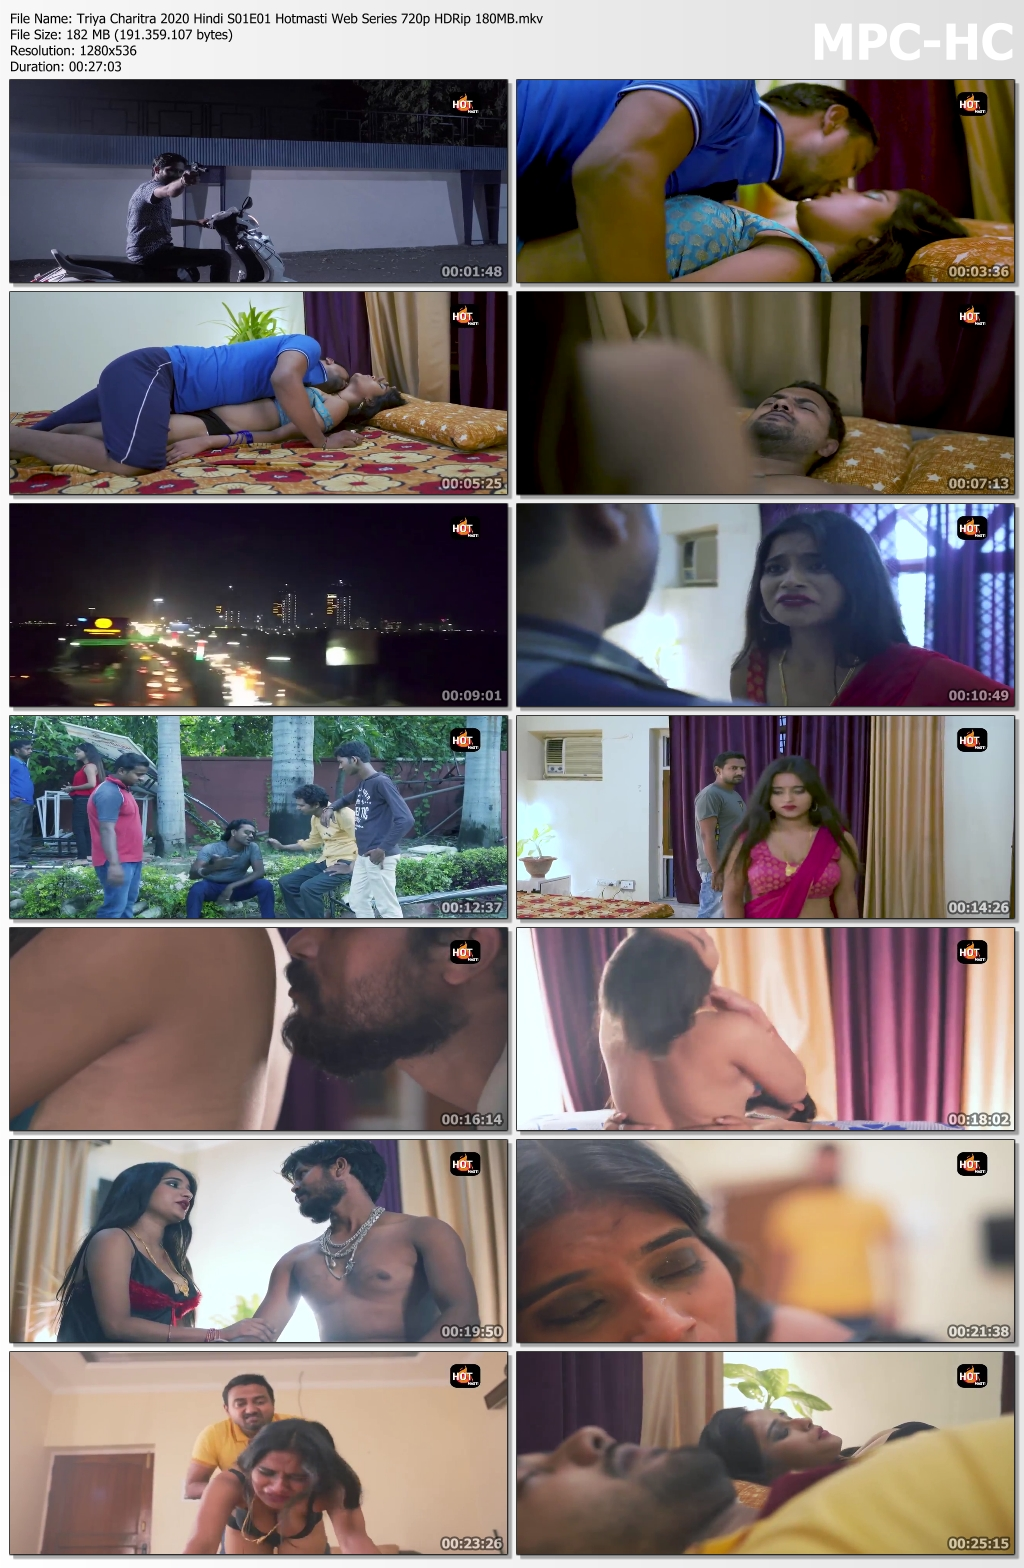 Triya-Charitra-2020-Hindi-S01-E01-Hotmasti-Web-Series-720p-HDRip-180-MB-mkv-thumbs